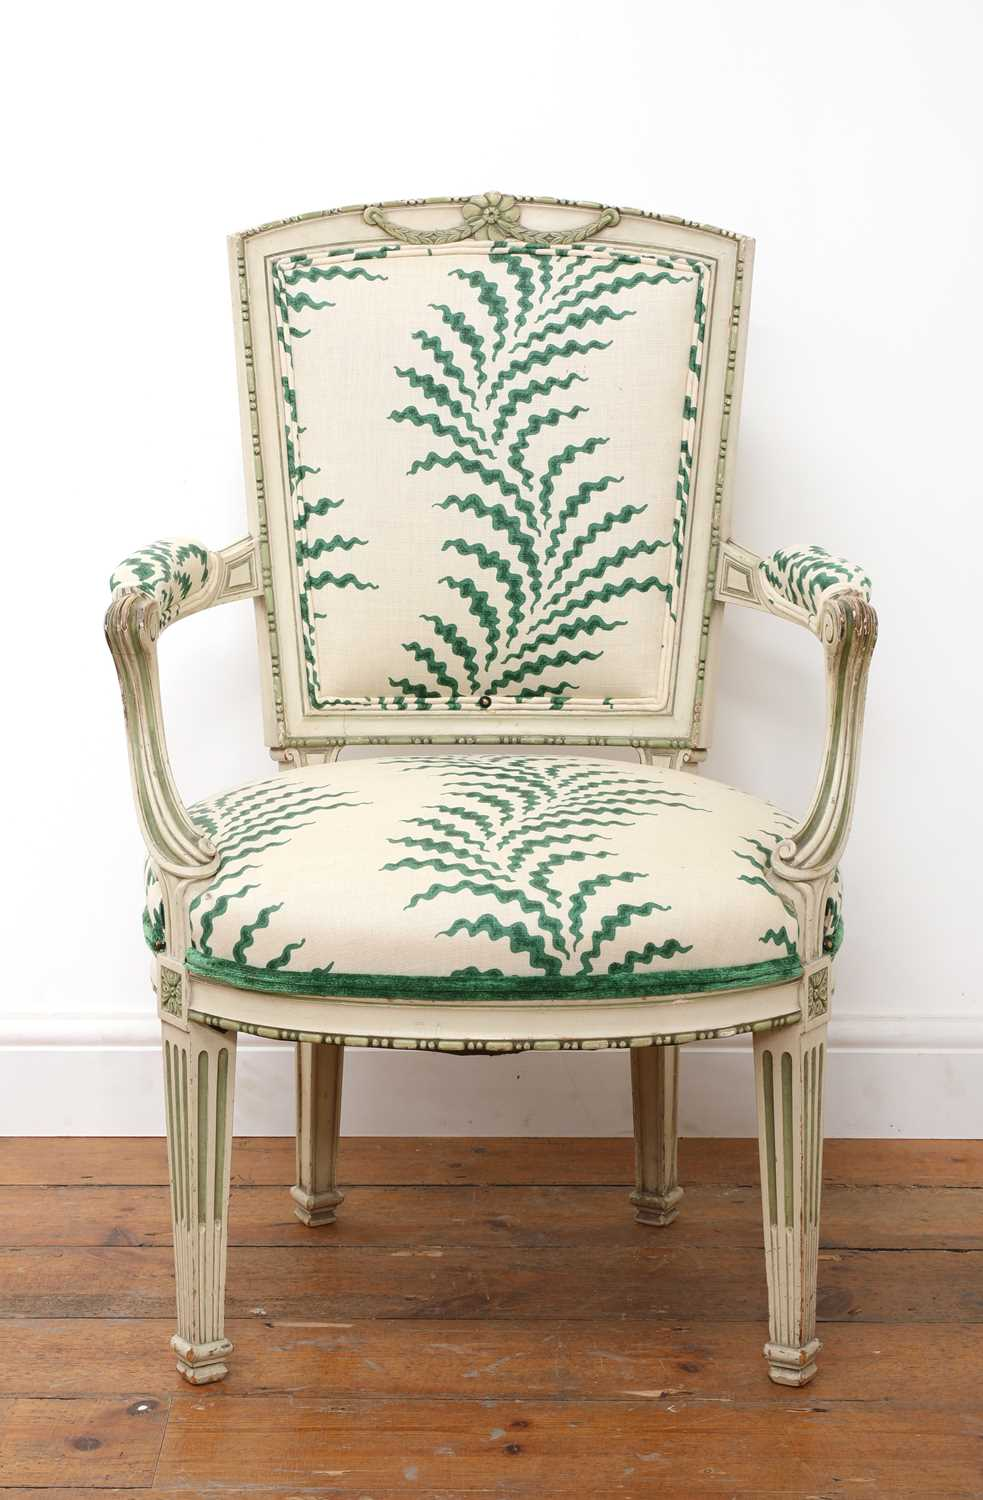 A French Louis XVI-style painted fauteuil,